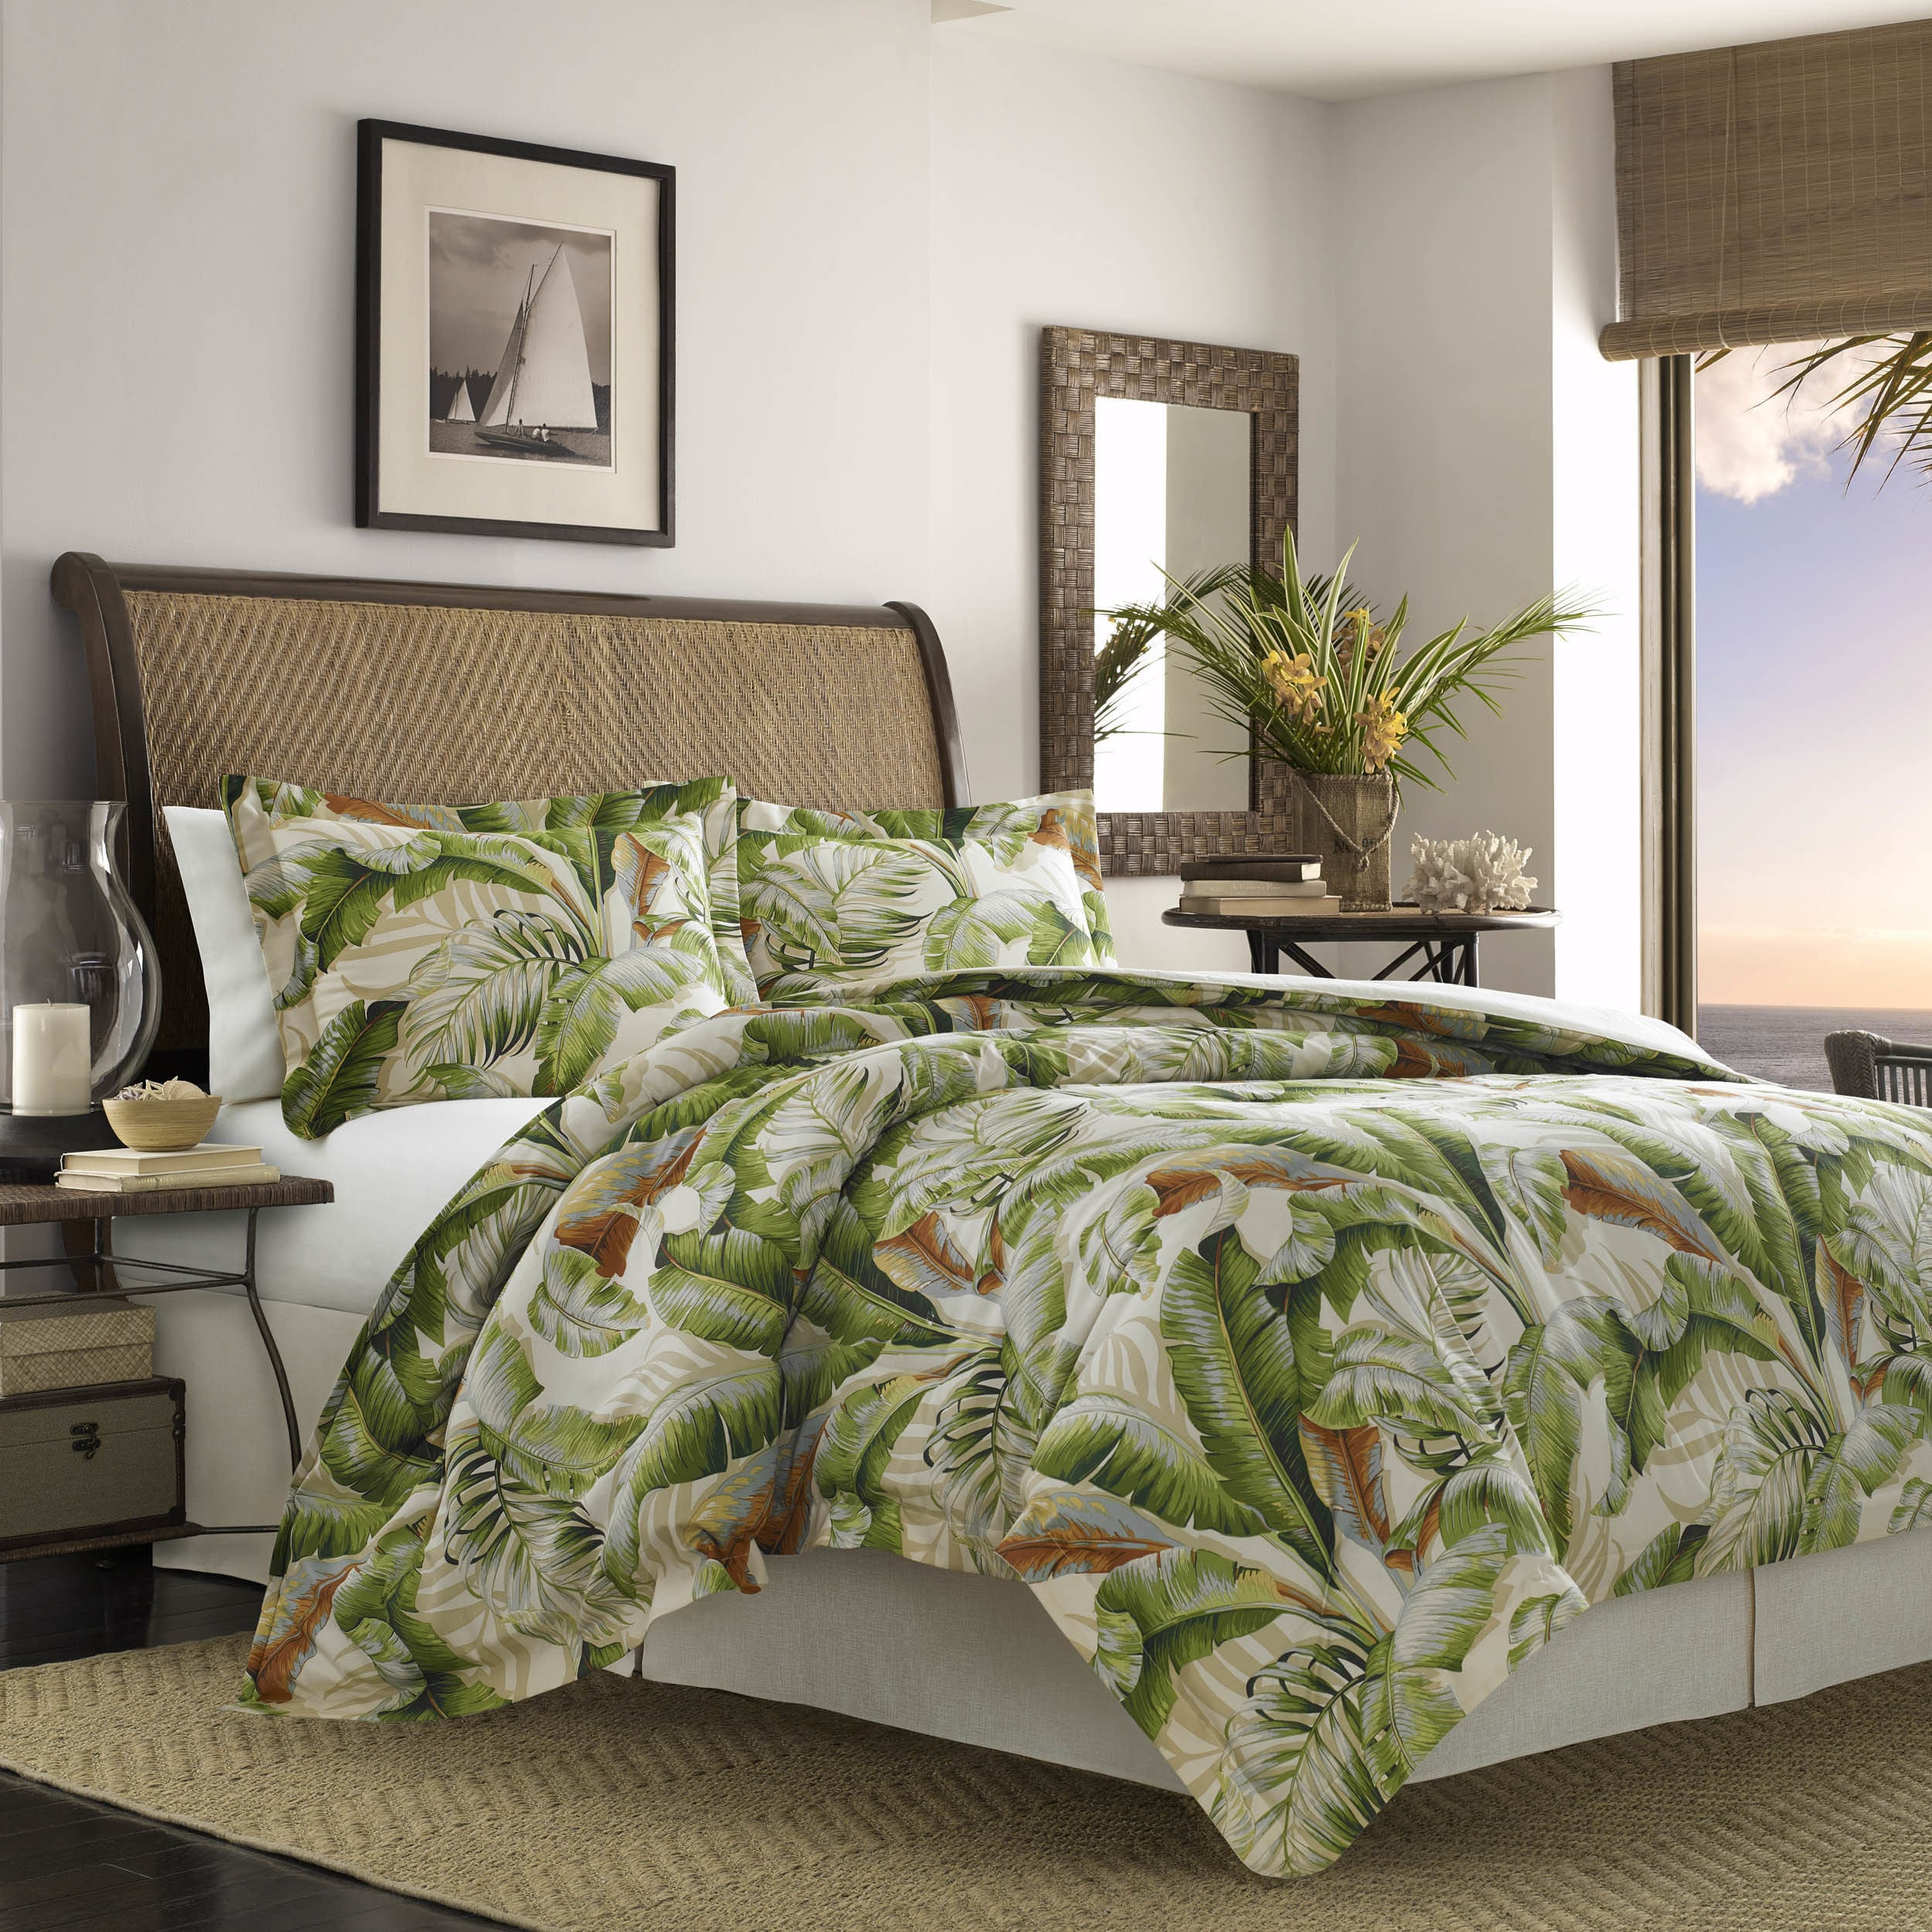 yellow bahama bedding golden tropical king tommy for comforter most set pin design stunning the lily in bedroom